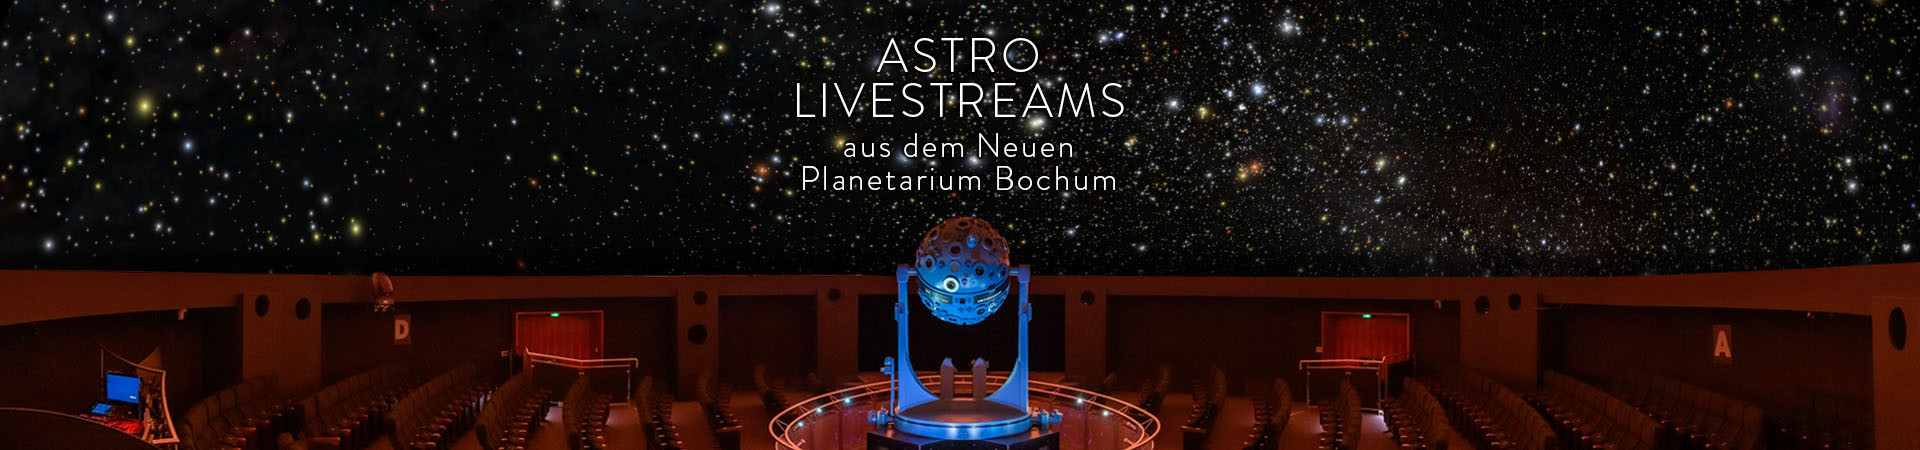 Astro Livestreams Header